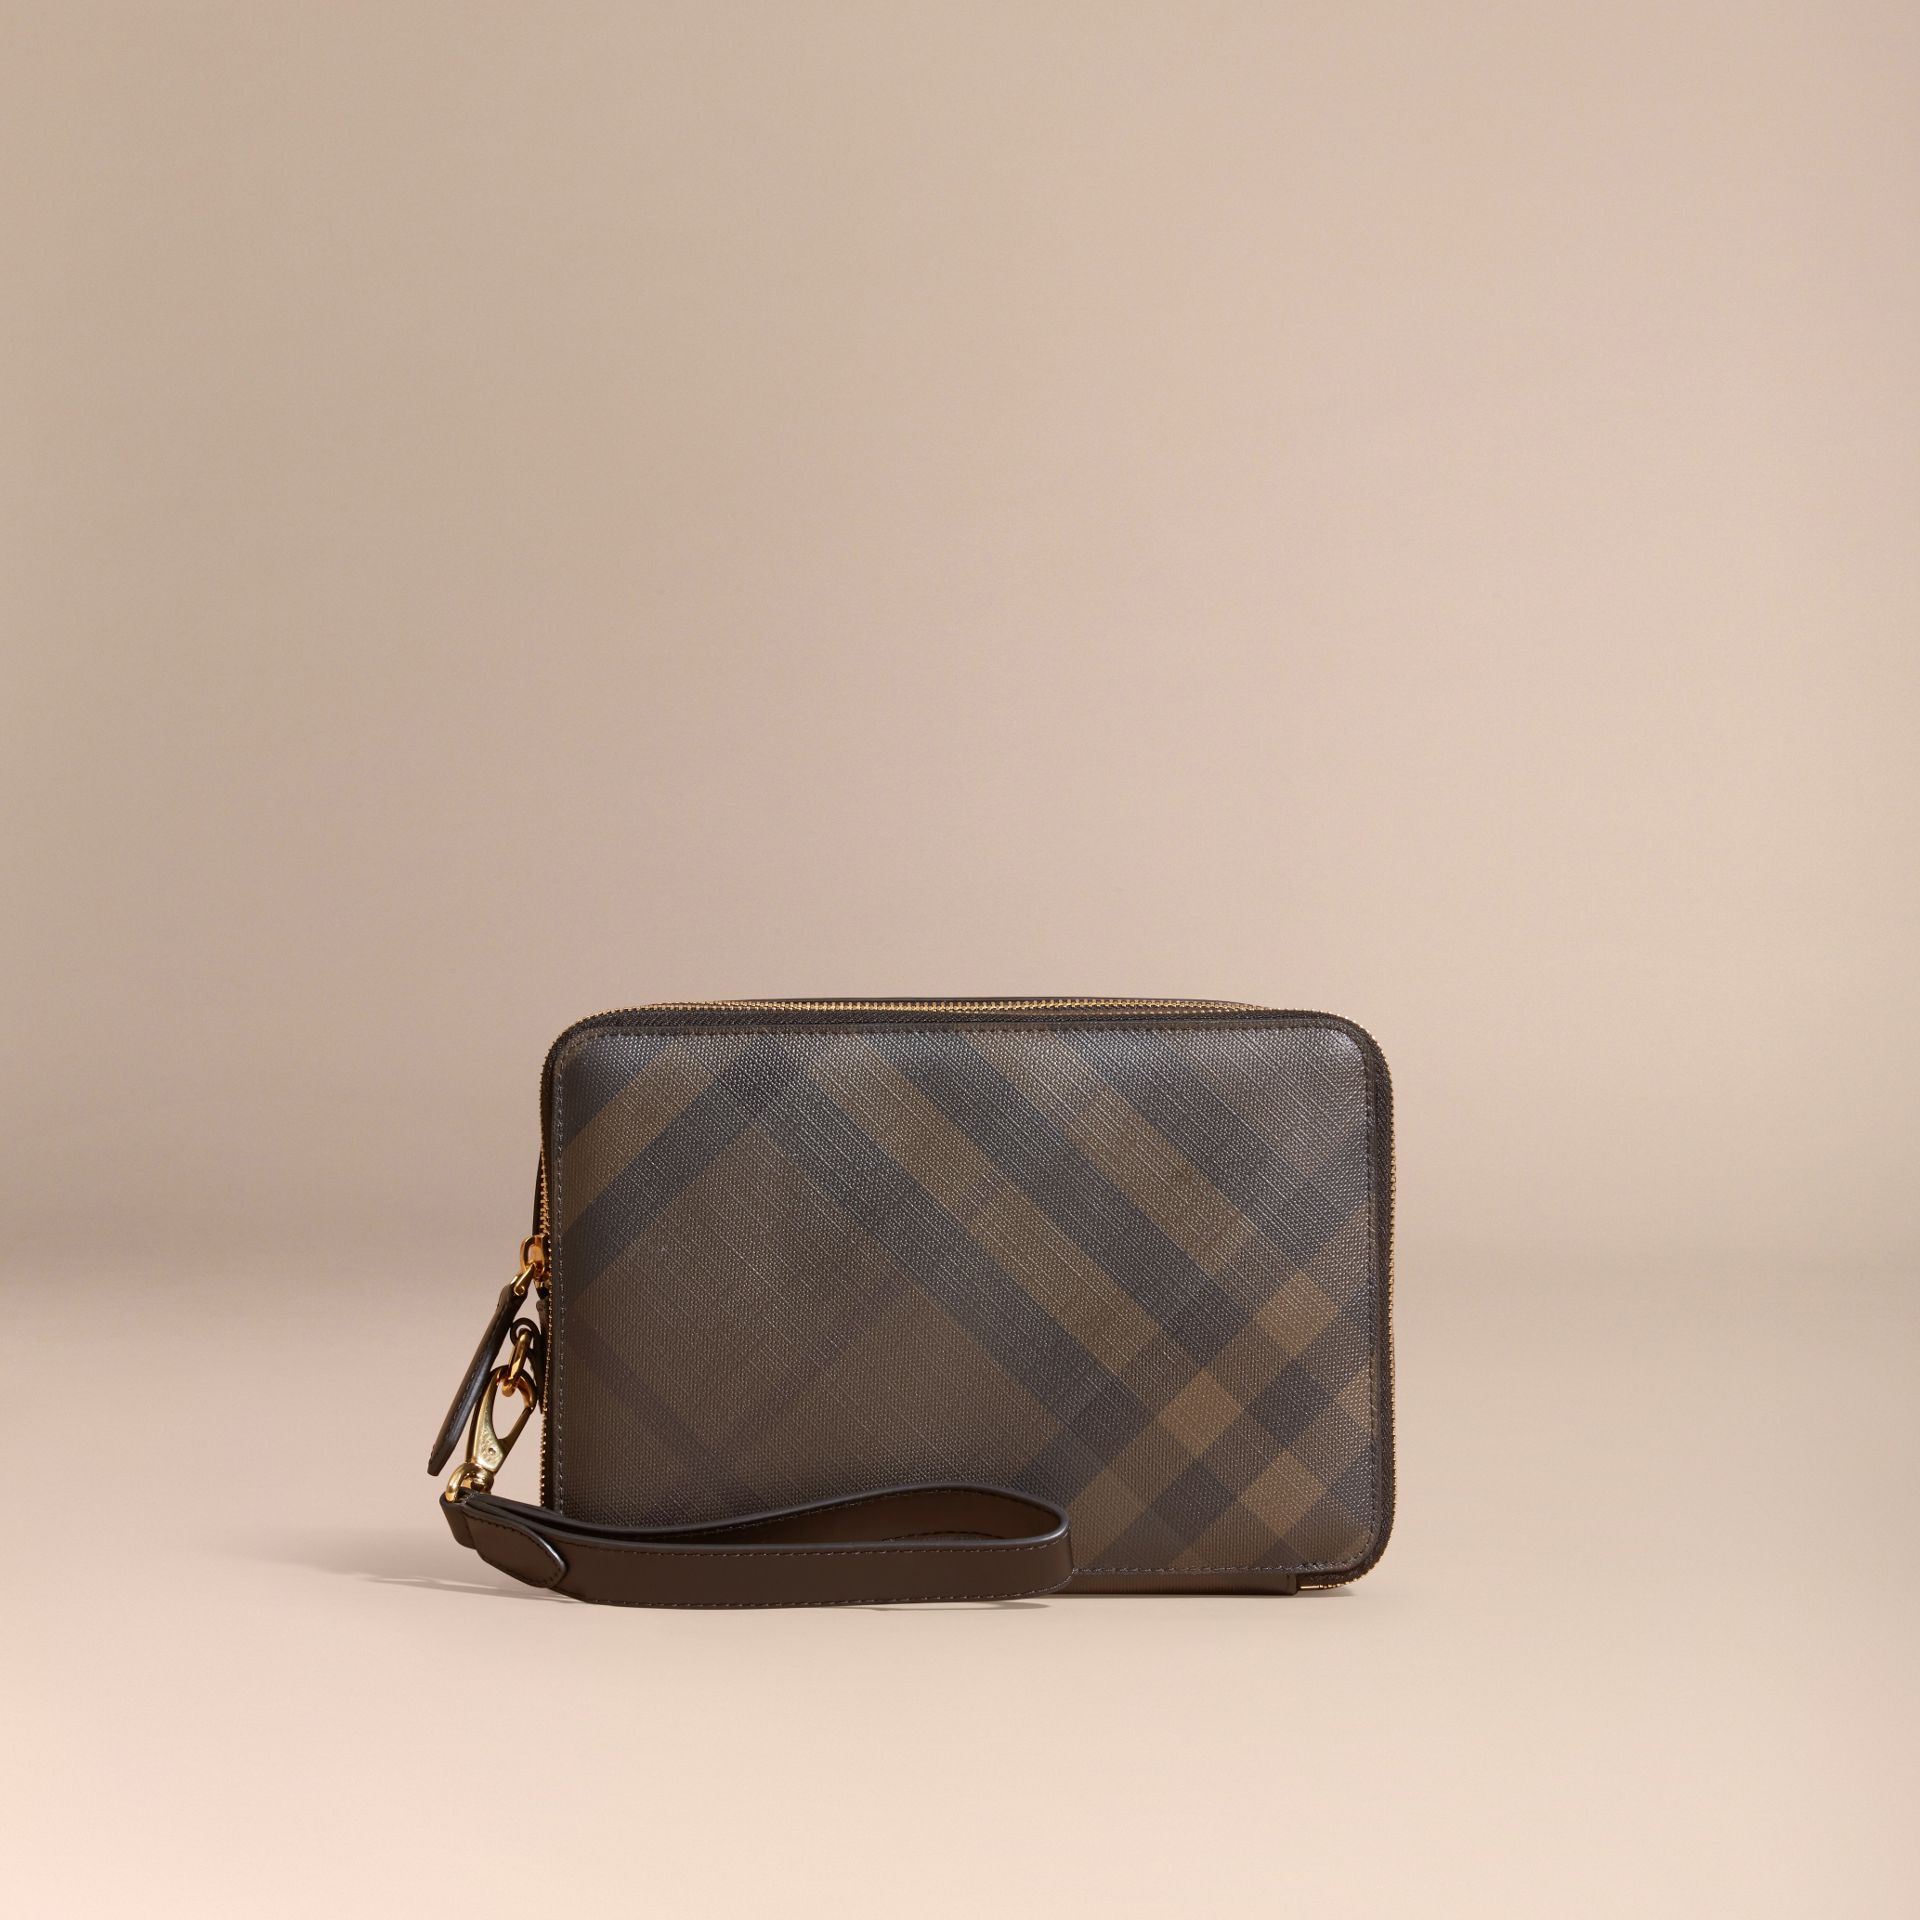 Leather-trimmed London Check Pouch in Chocolate/black - Men | Burberry United Kingdom - gallery image 6